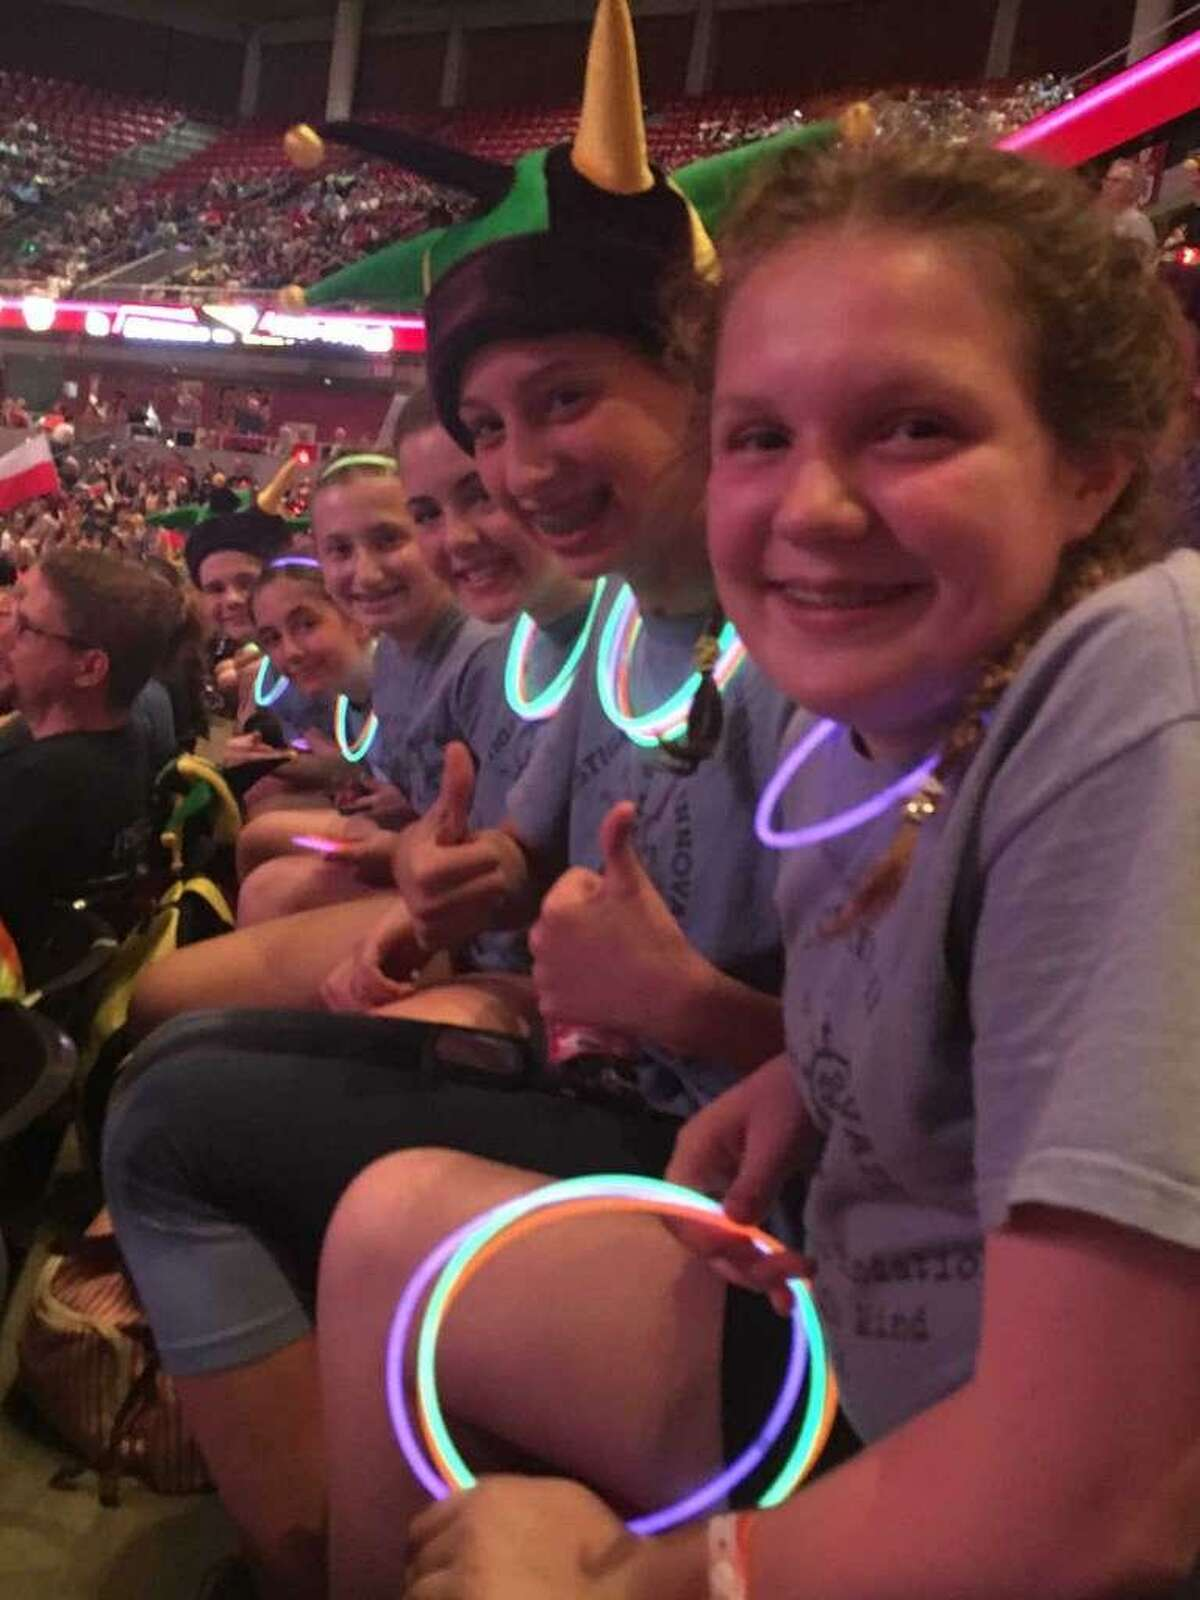 FILE - From left, Julia Kempton, Annalise Fabricator, Meredith Ford, Abby Guttman, Emily Sasser and Alba Alizoti pose in their team t-shirts at Odyssey of the Mind World Finals at Iowa State University.